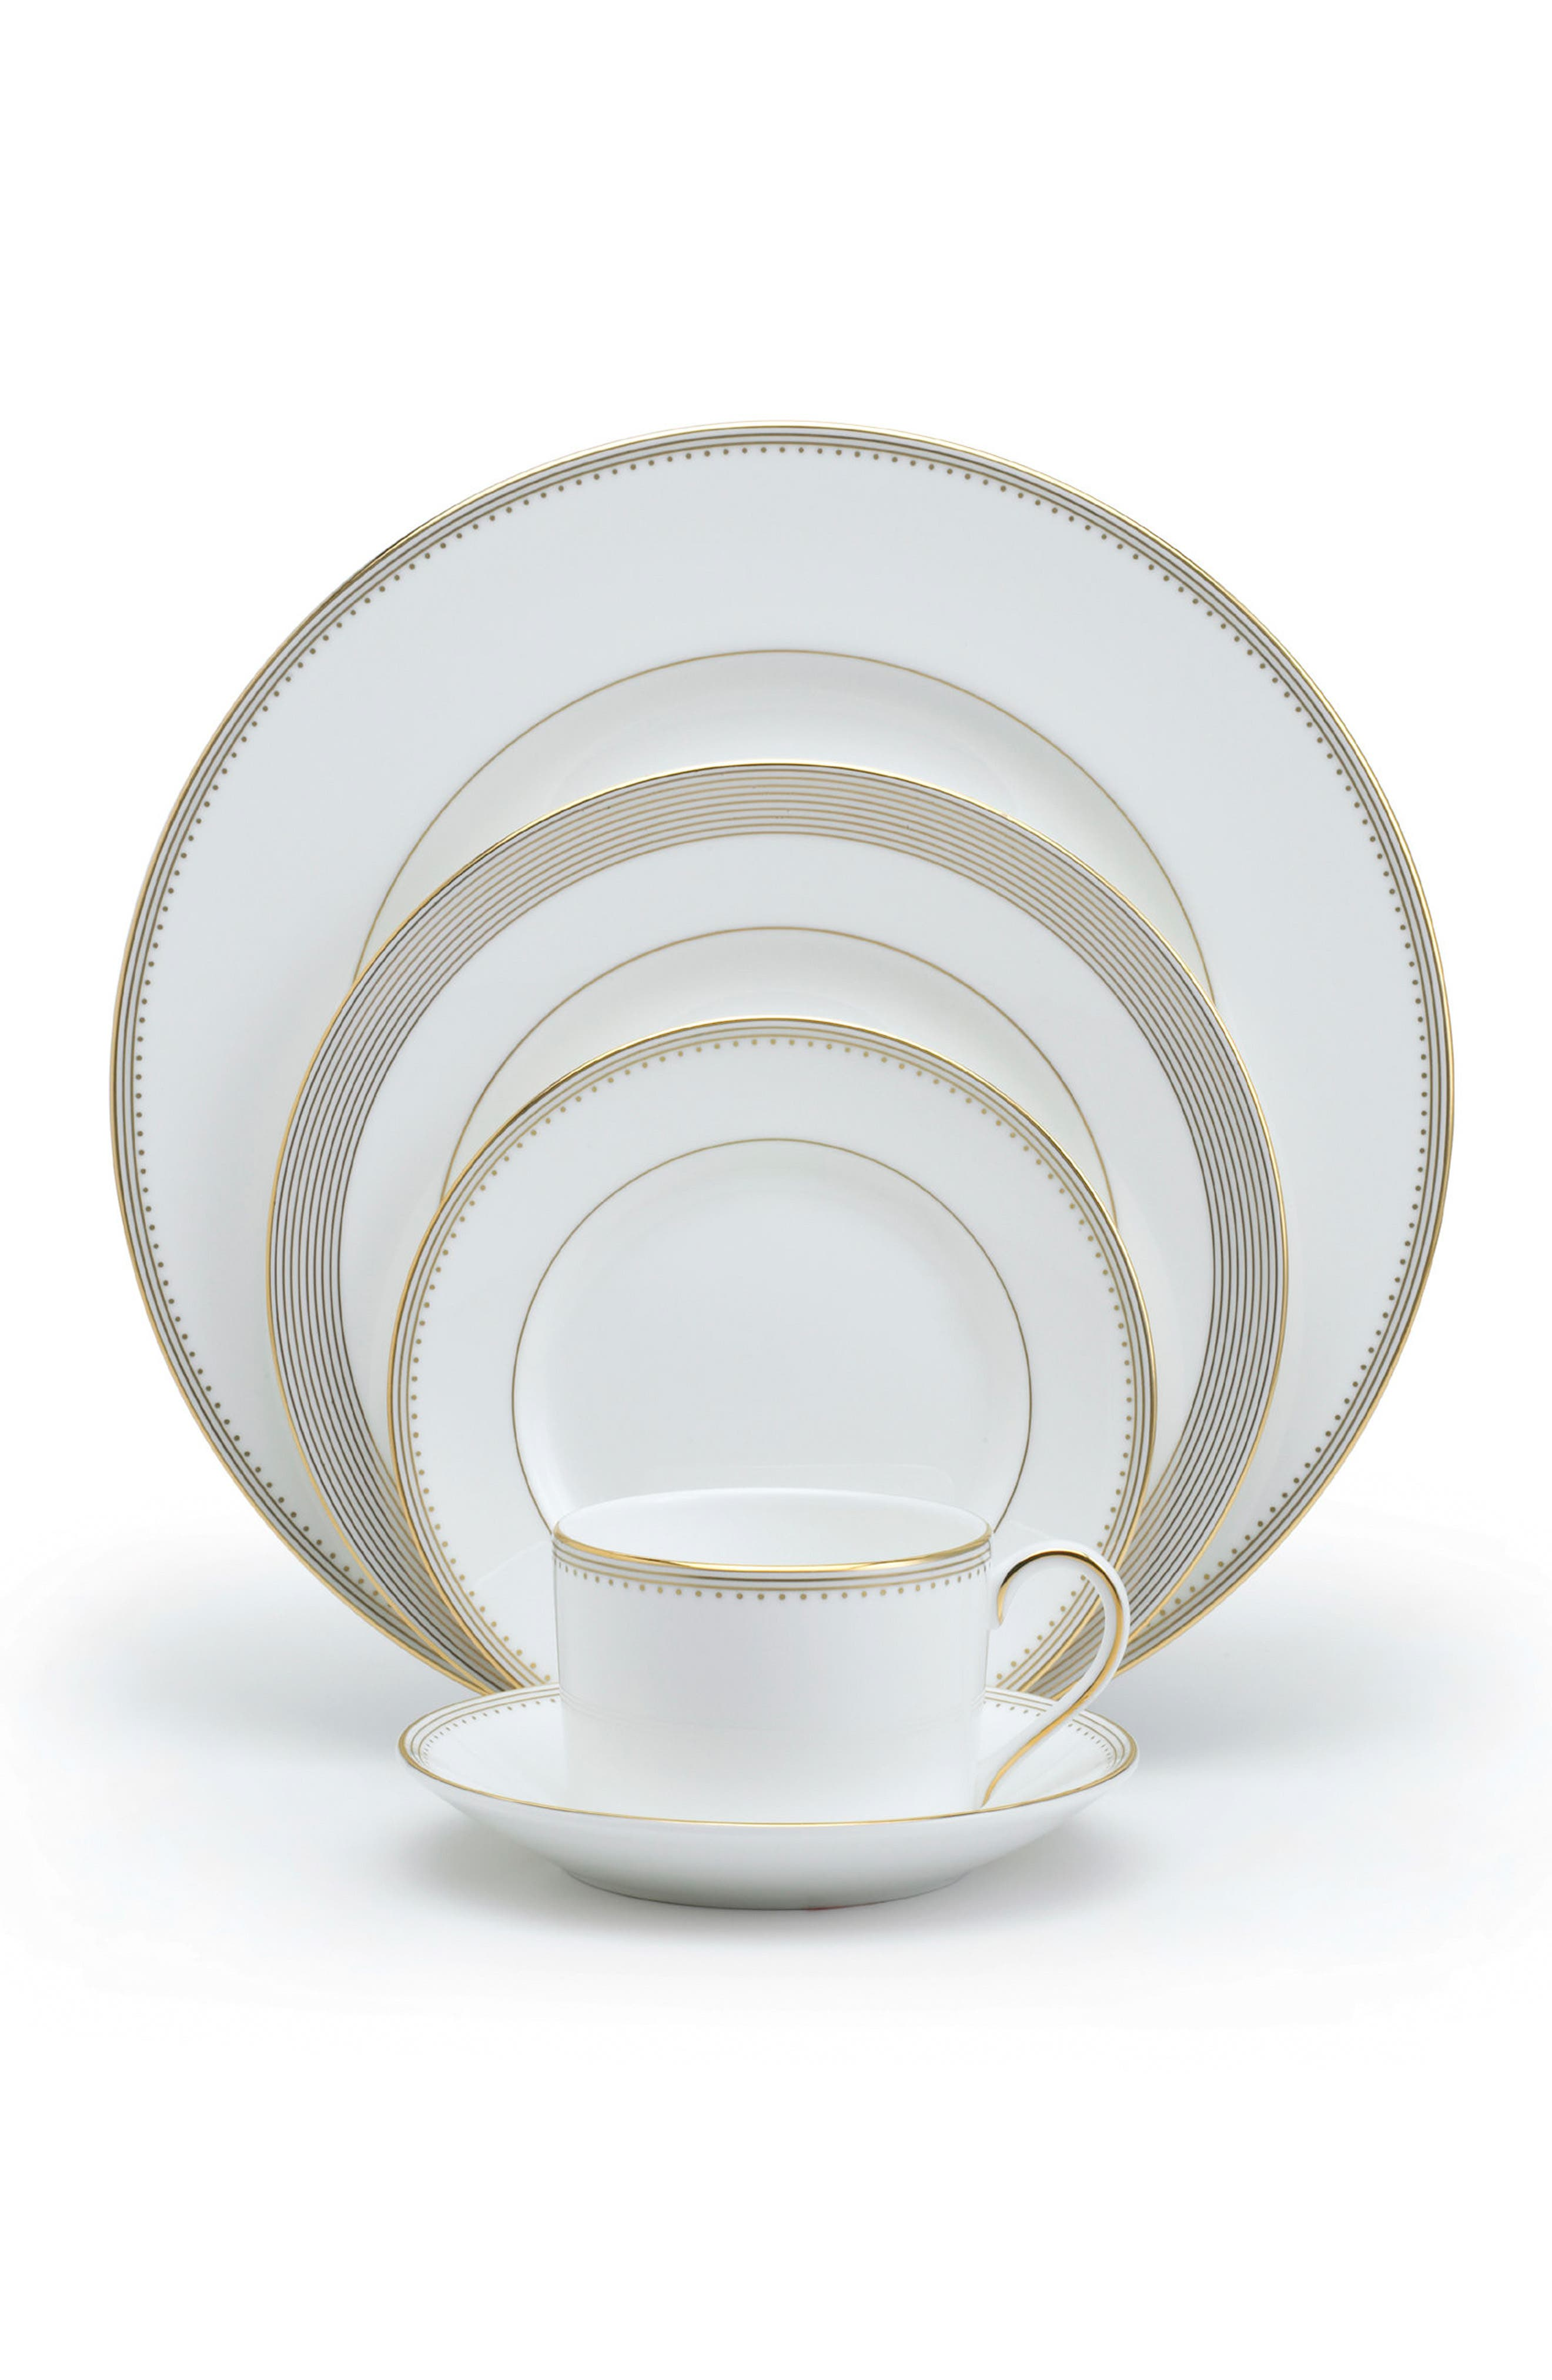 Main Image - Vera Wang 5-Piece Bone China Dinnerware Place Setting